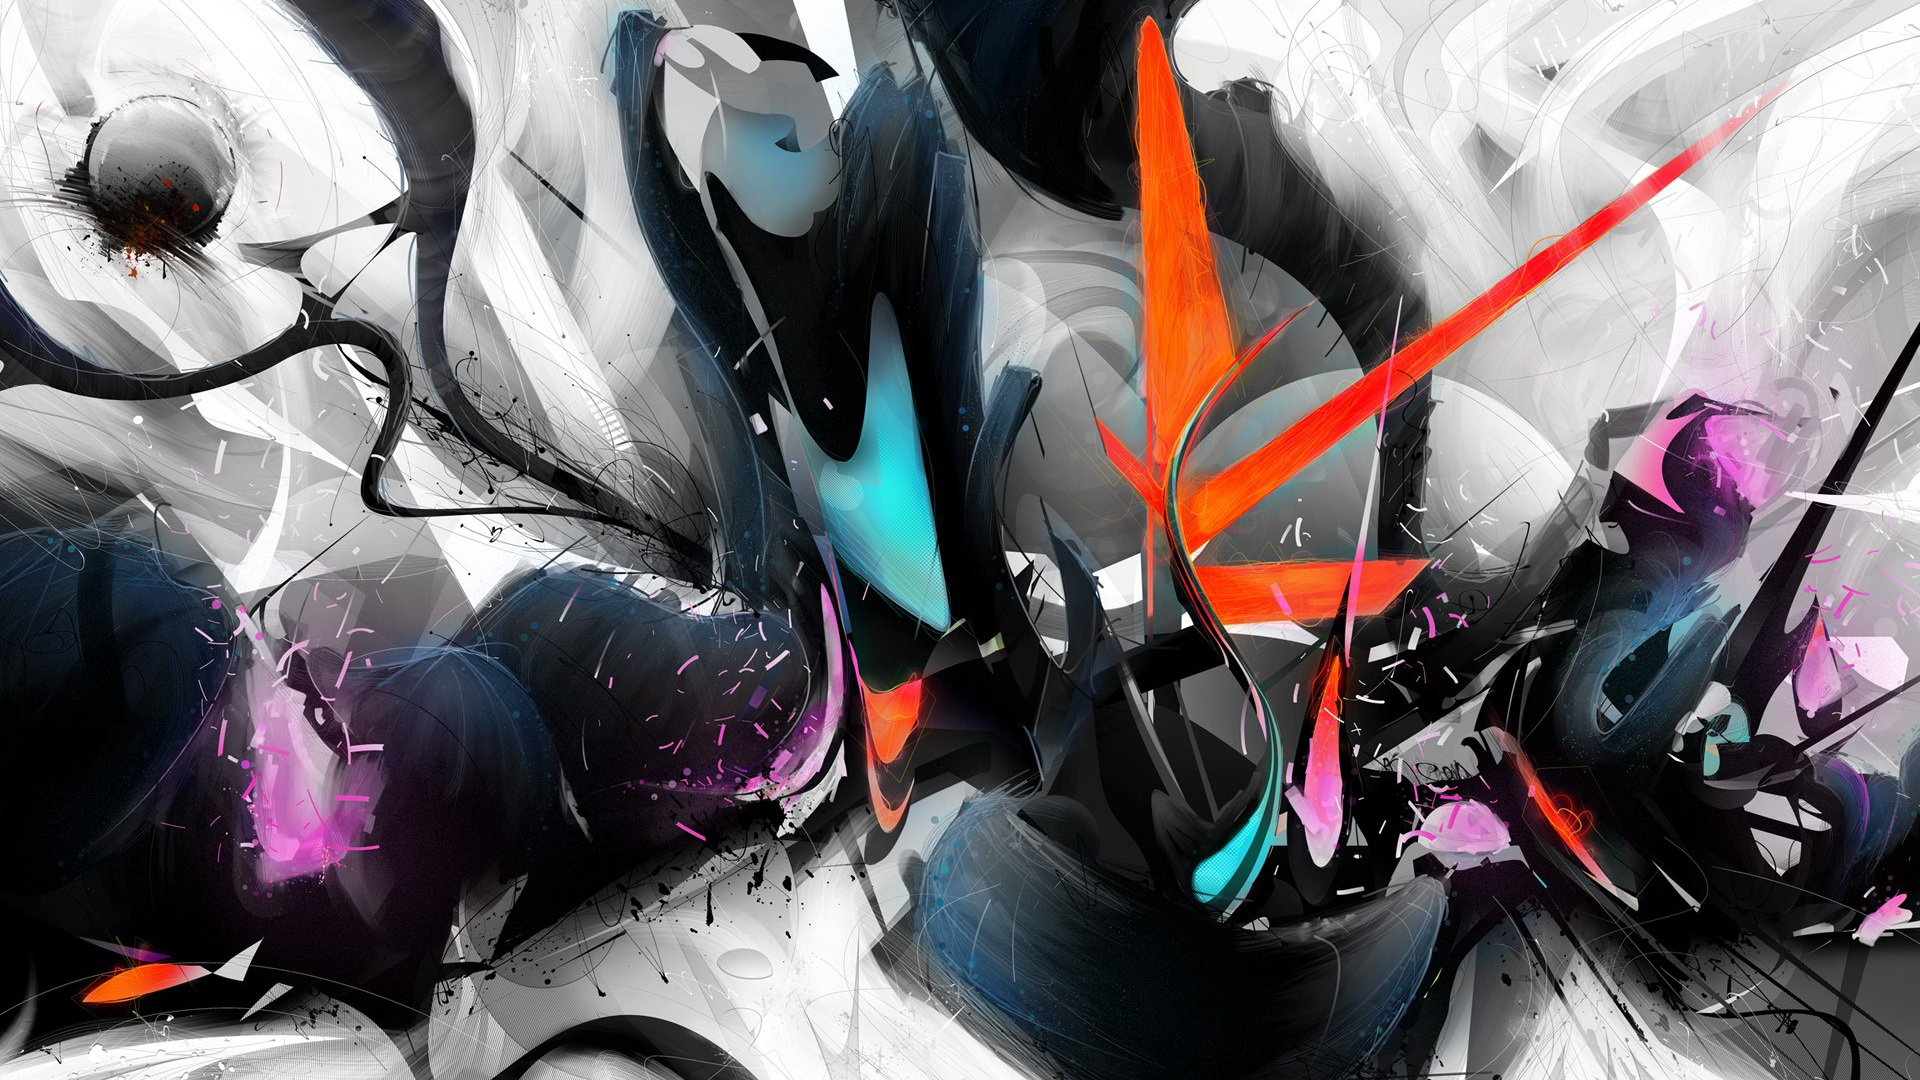 Cool 3D Abstract Full HD Wallpaper 136 - Amazing Wallpaperz